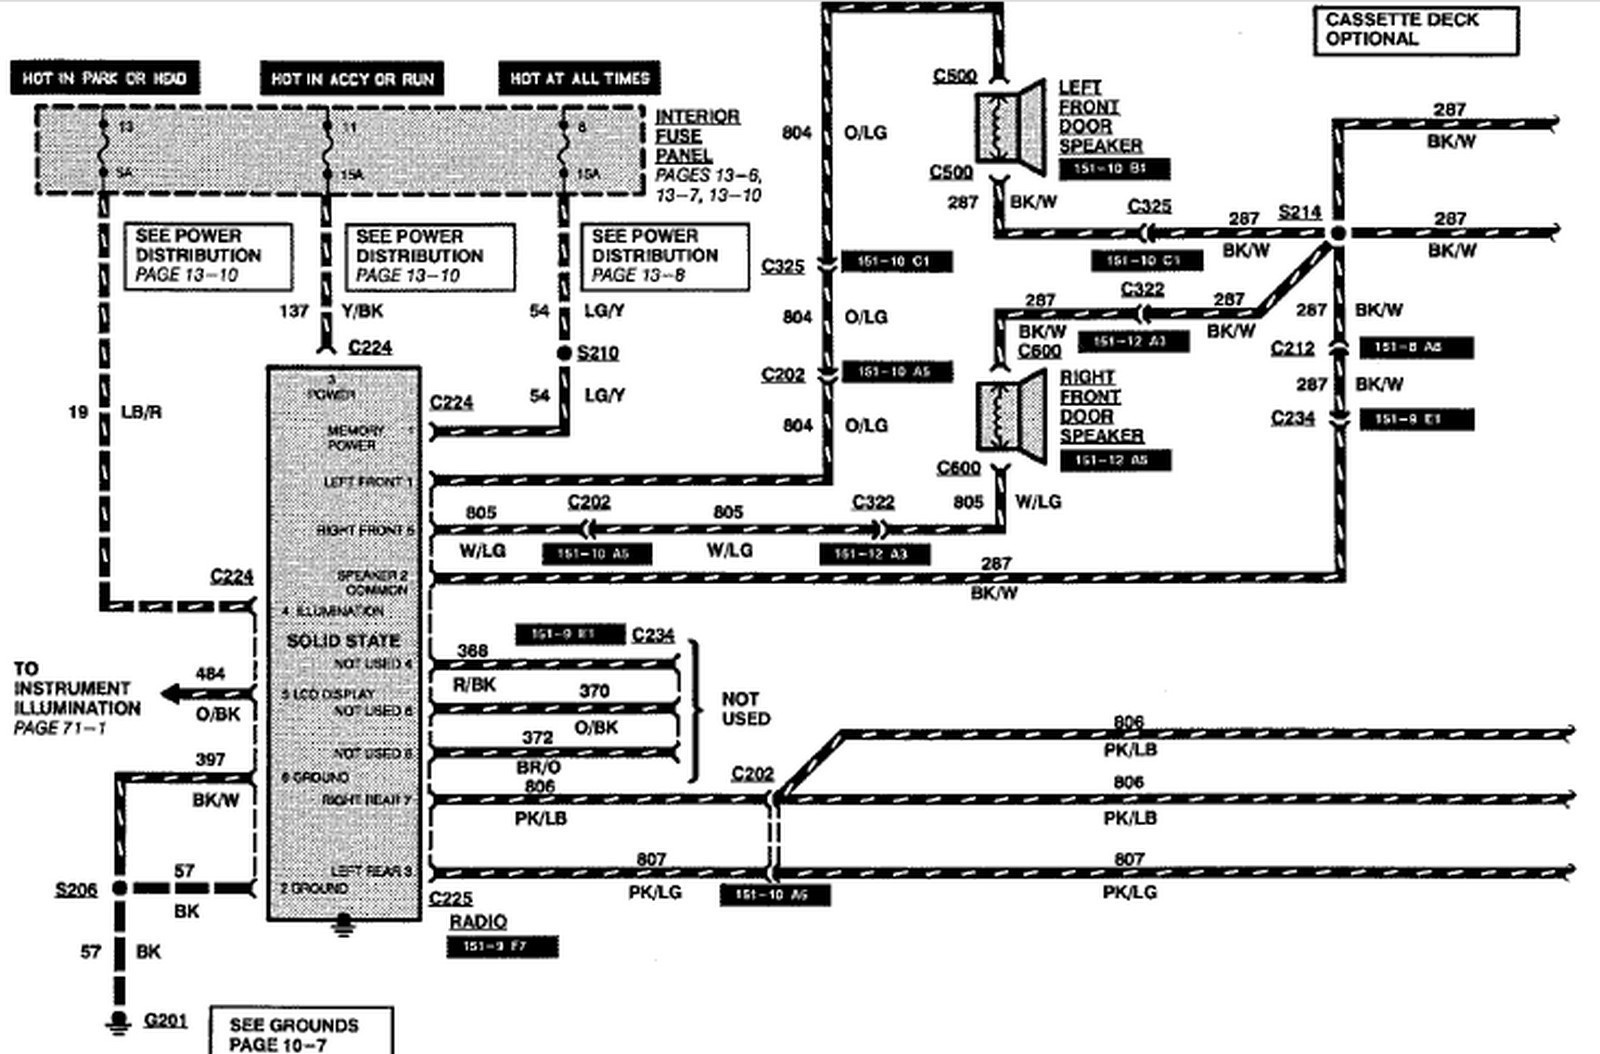 2008 Ford Econoline Van Radio Wiring Diagram from static-resources.imageservice.cloud